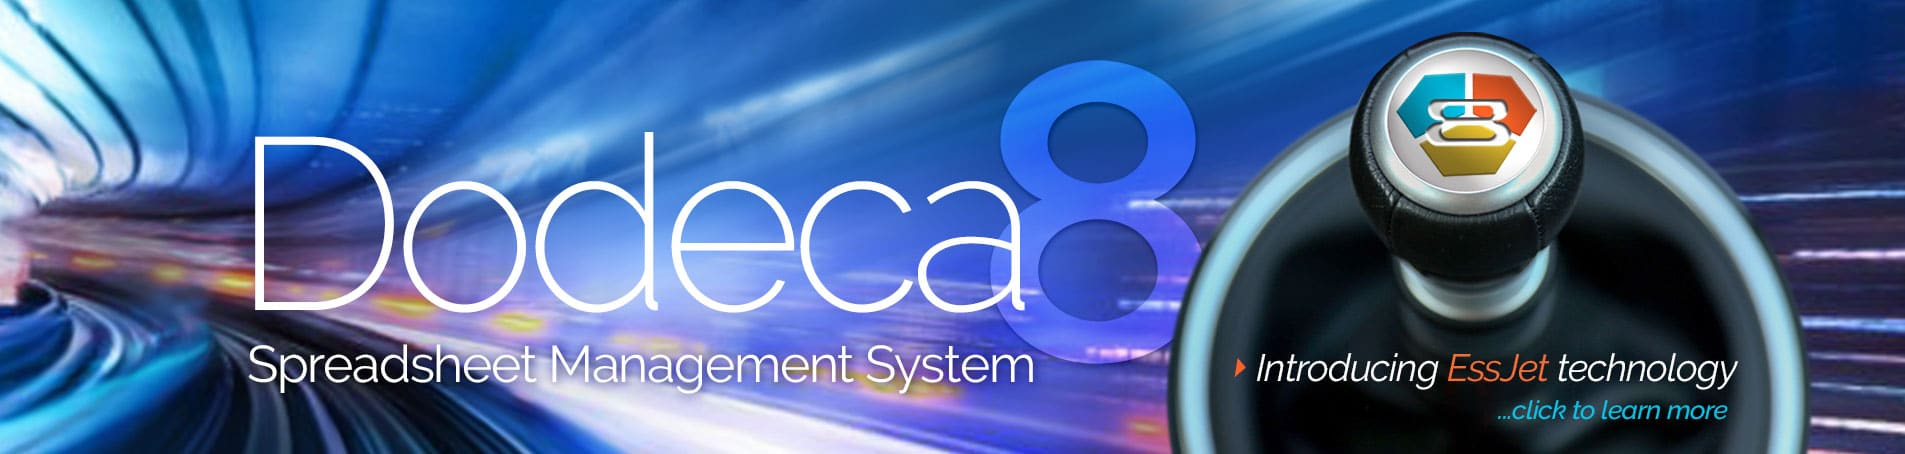 Dodeca 8 with EssJet technology